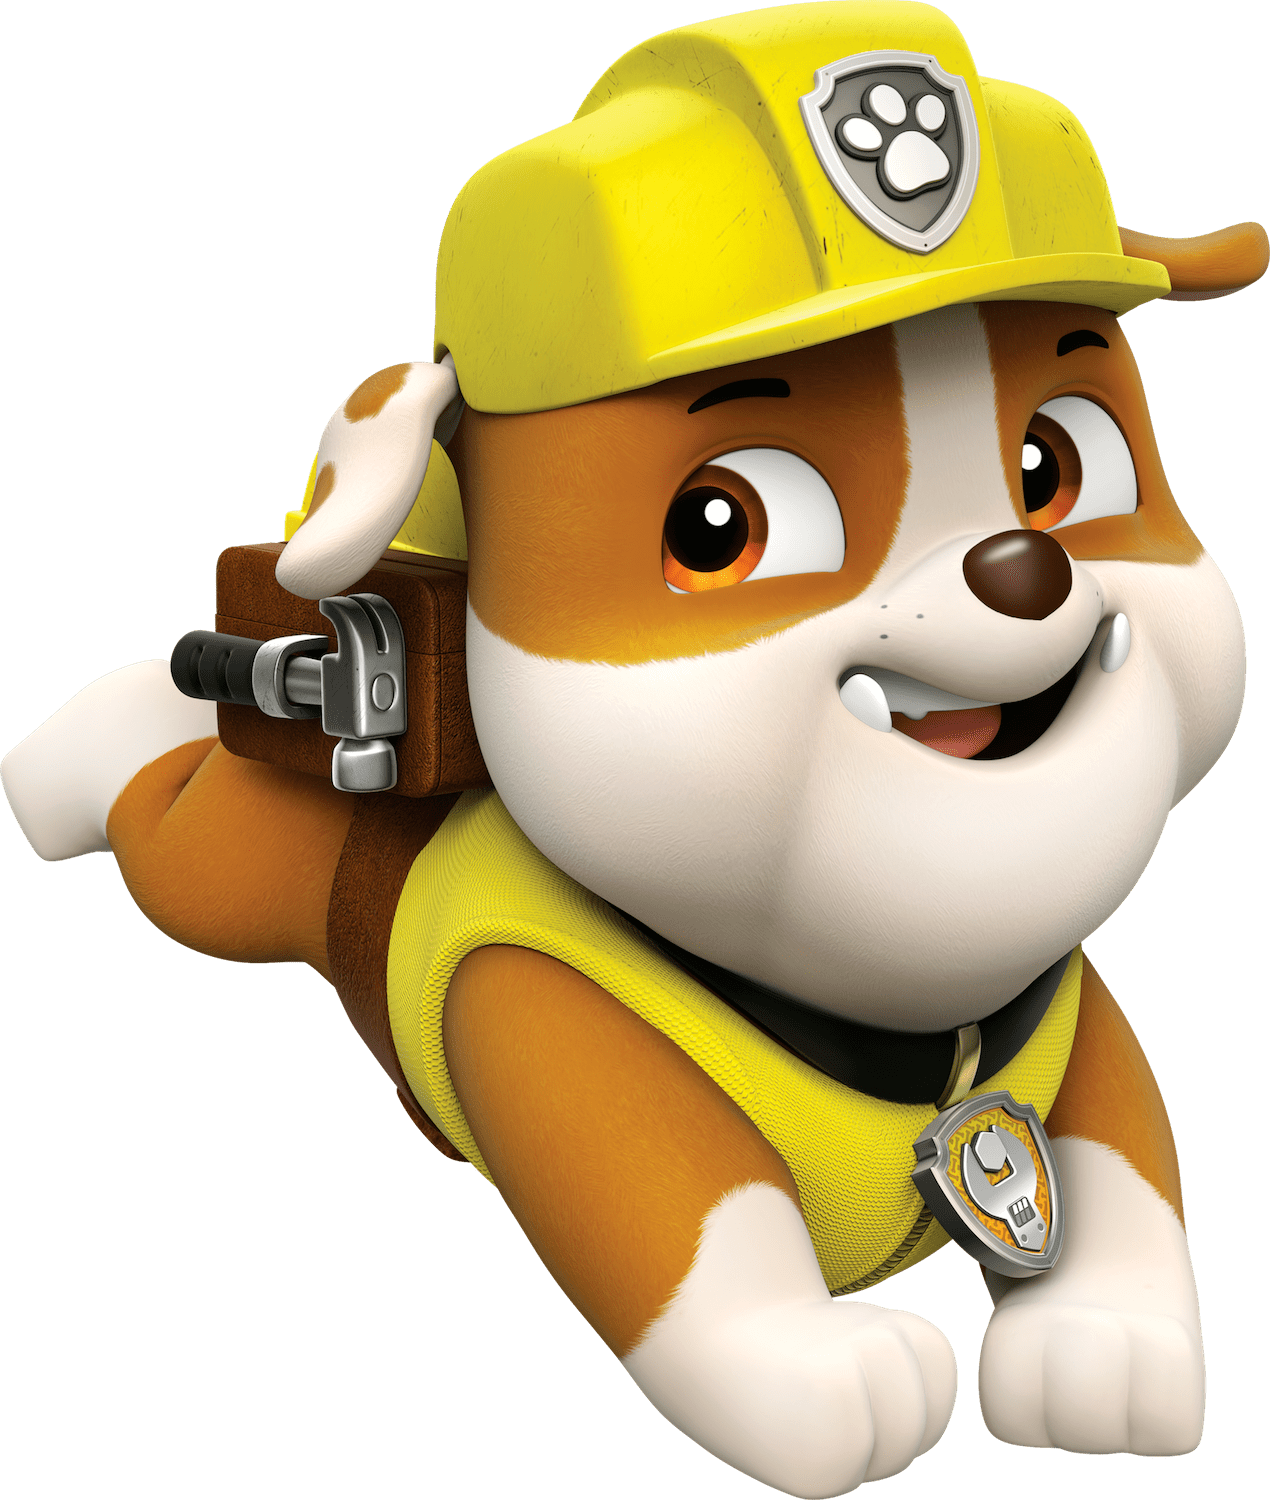 Faces clipart paw patrol, Picture #1043210 faces clipart paw.